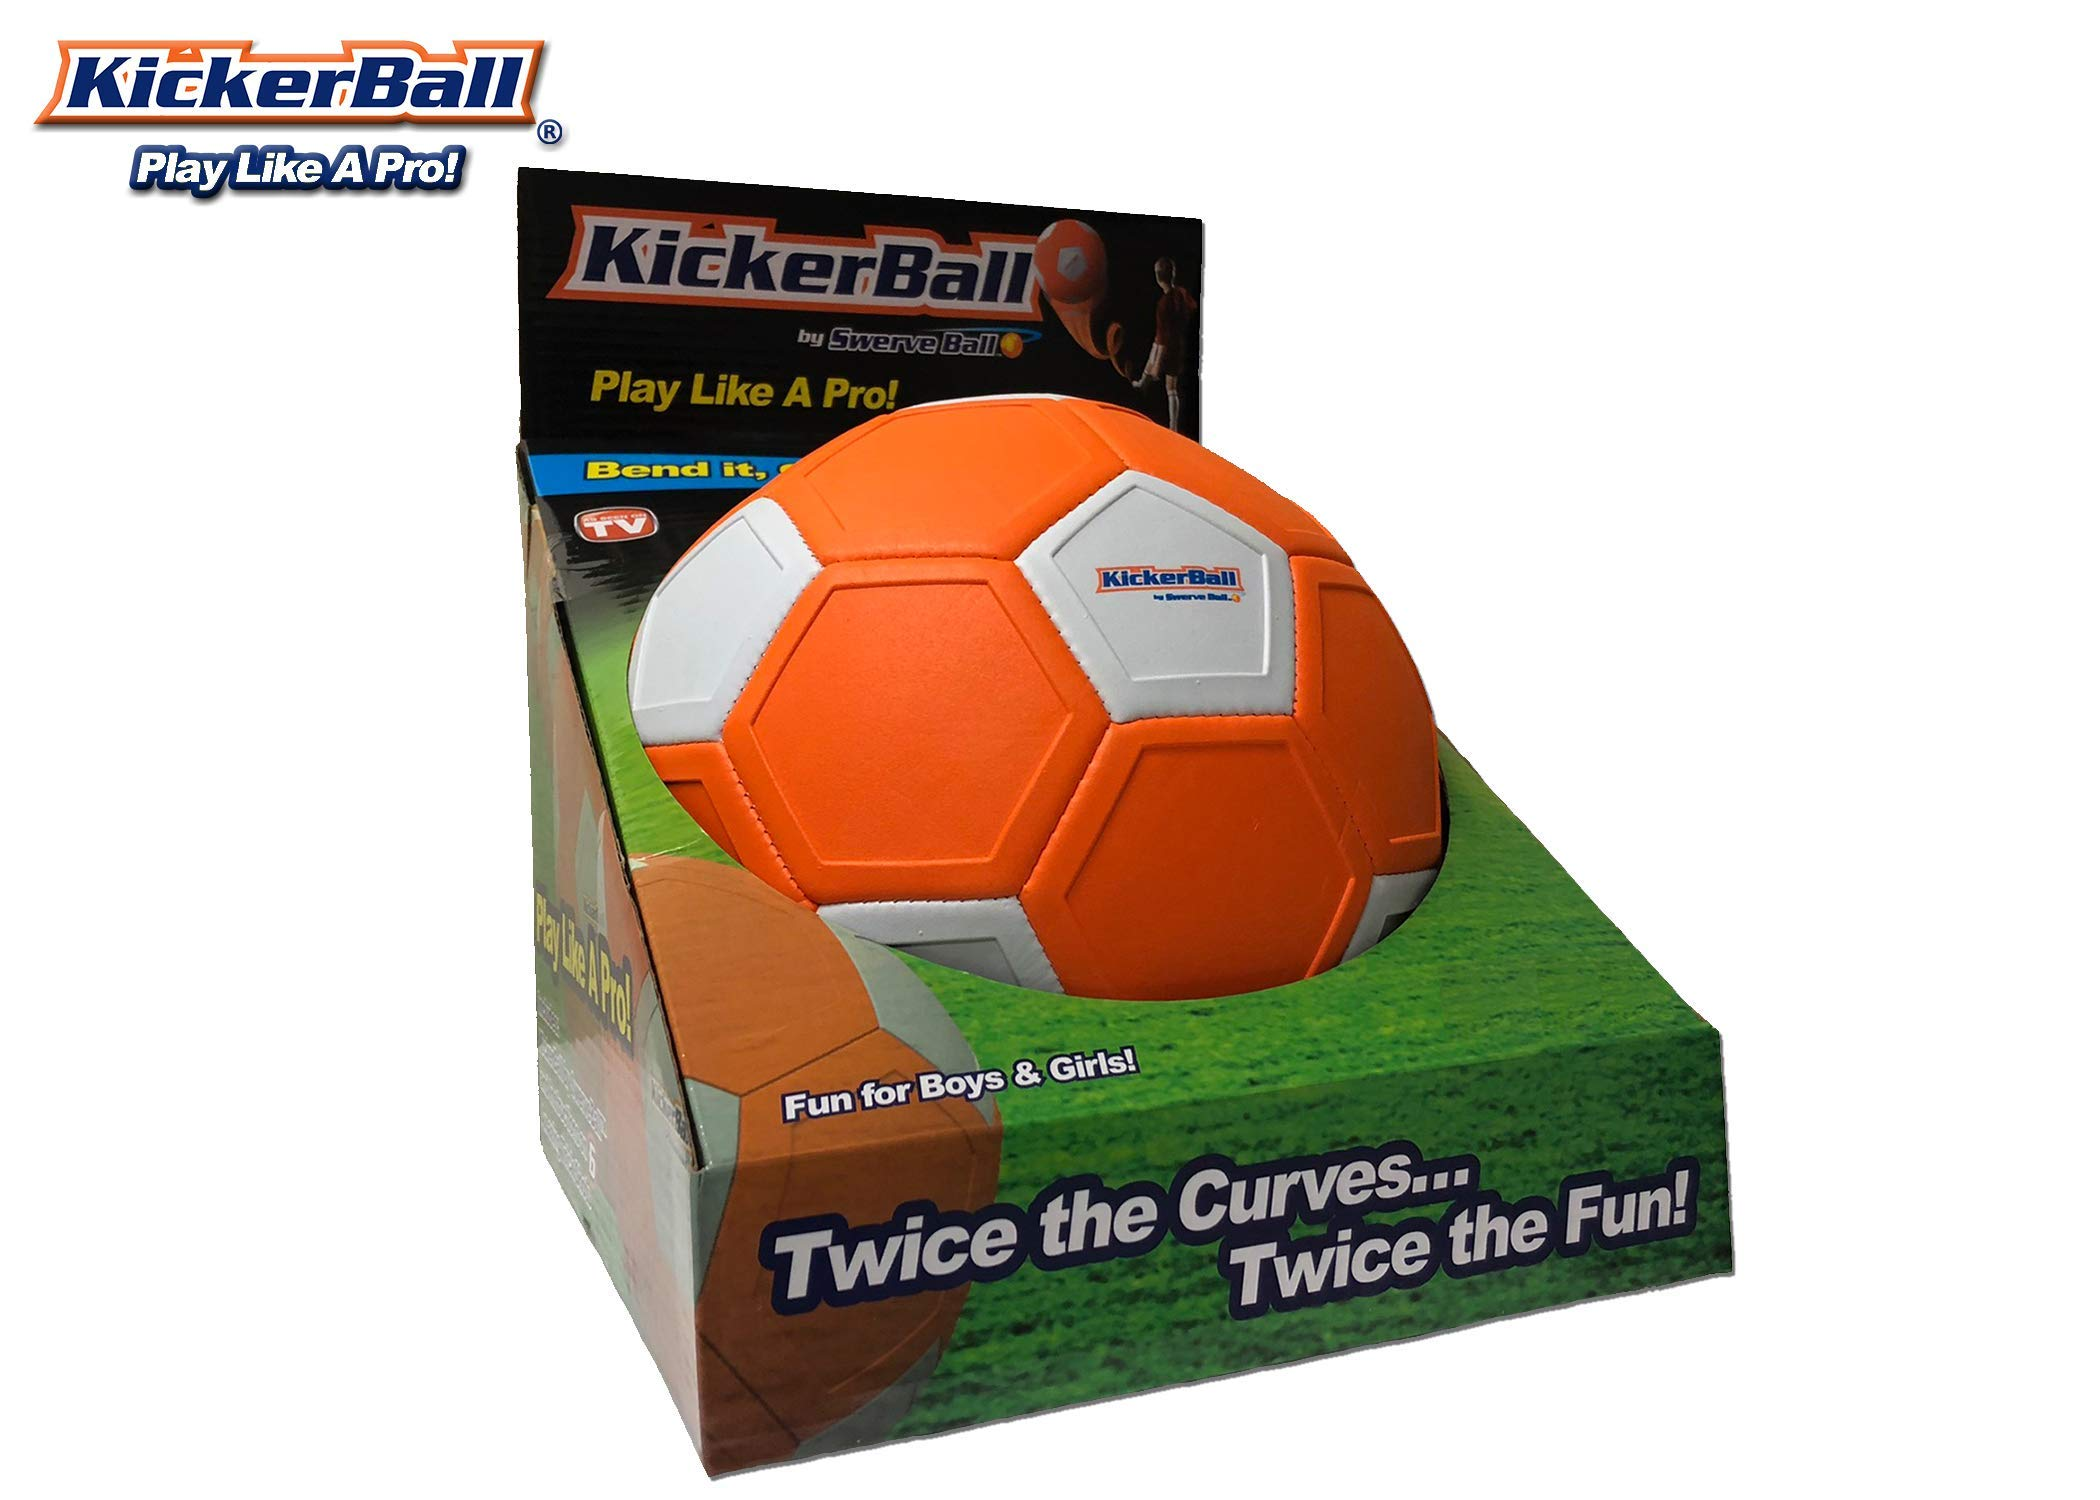 Kickerball - Curve and Swerve Soccer Ball/Football Toy - Kick Like The Pros, Great Gift for Boys and Girls - Perfect for Outdoor & Indoor Match or Game, Bring The World Cup to Your Backyard by Kickerball